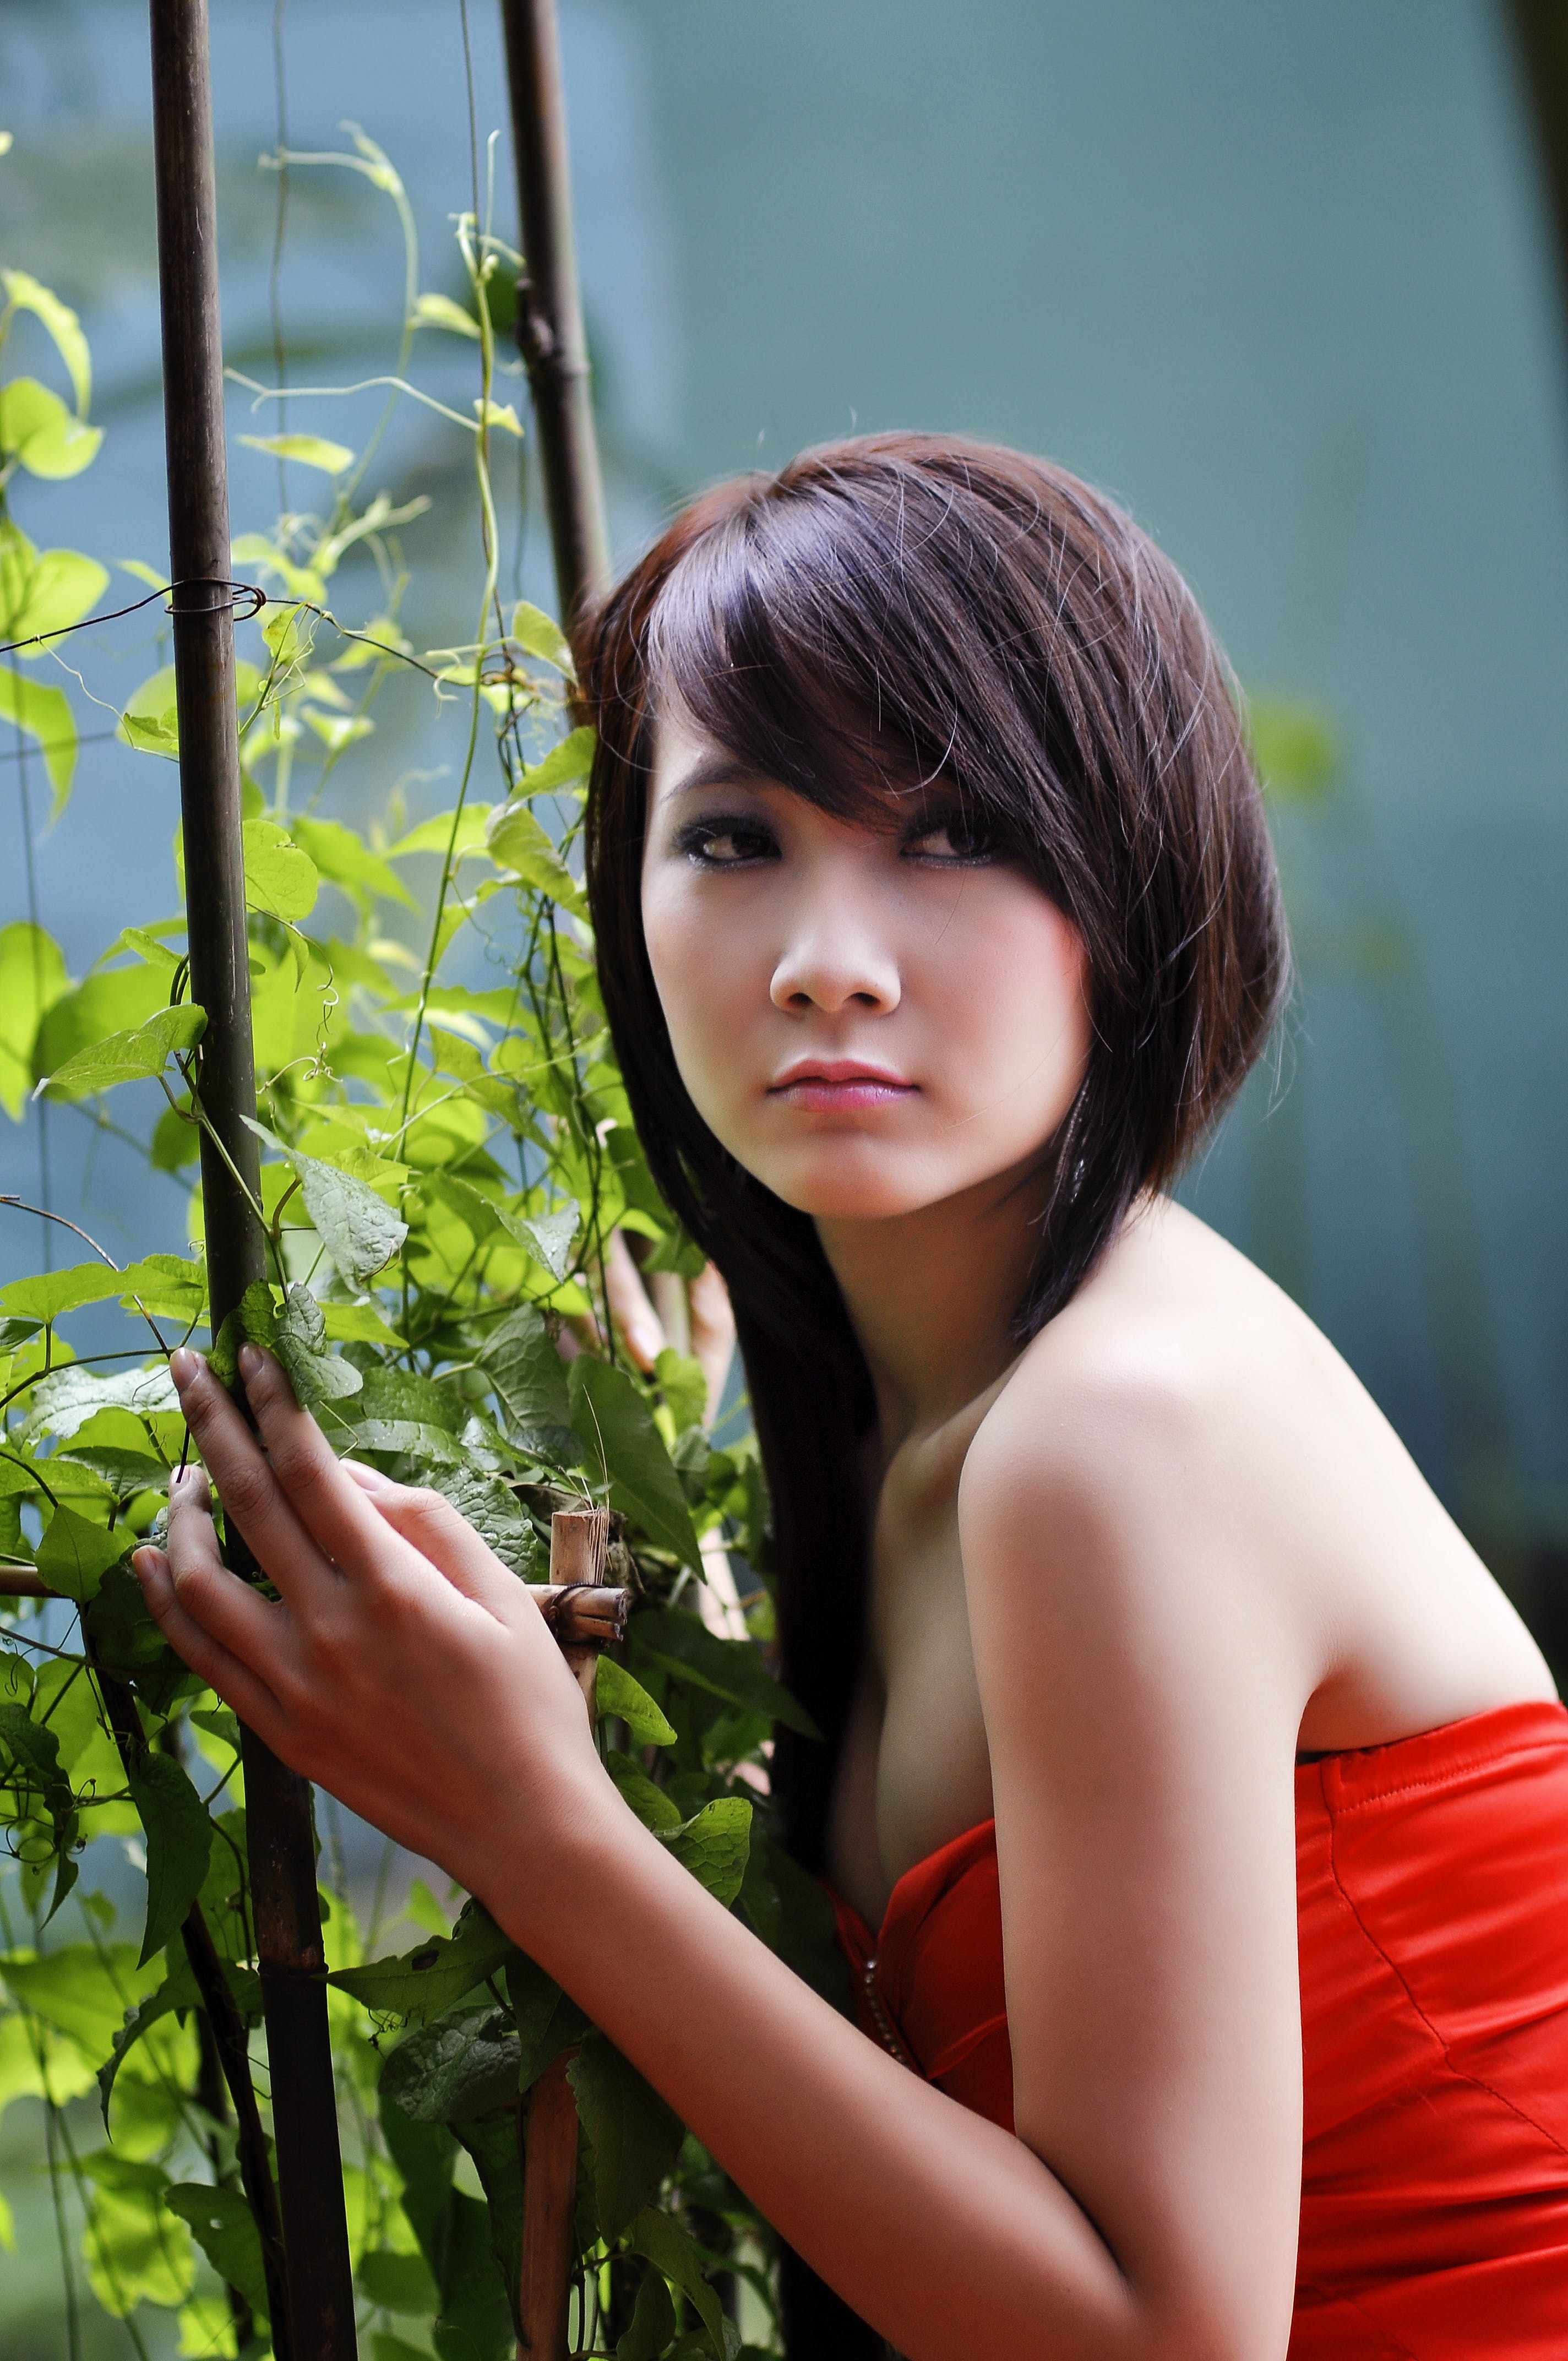 Woman Wearing Red Strapless Top Beside Green Leafed Plants